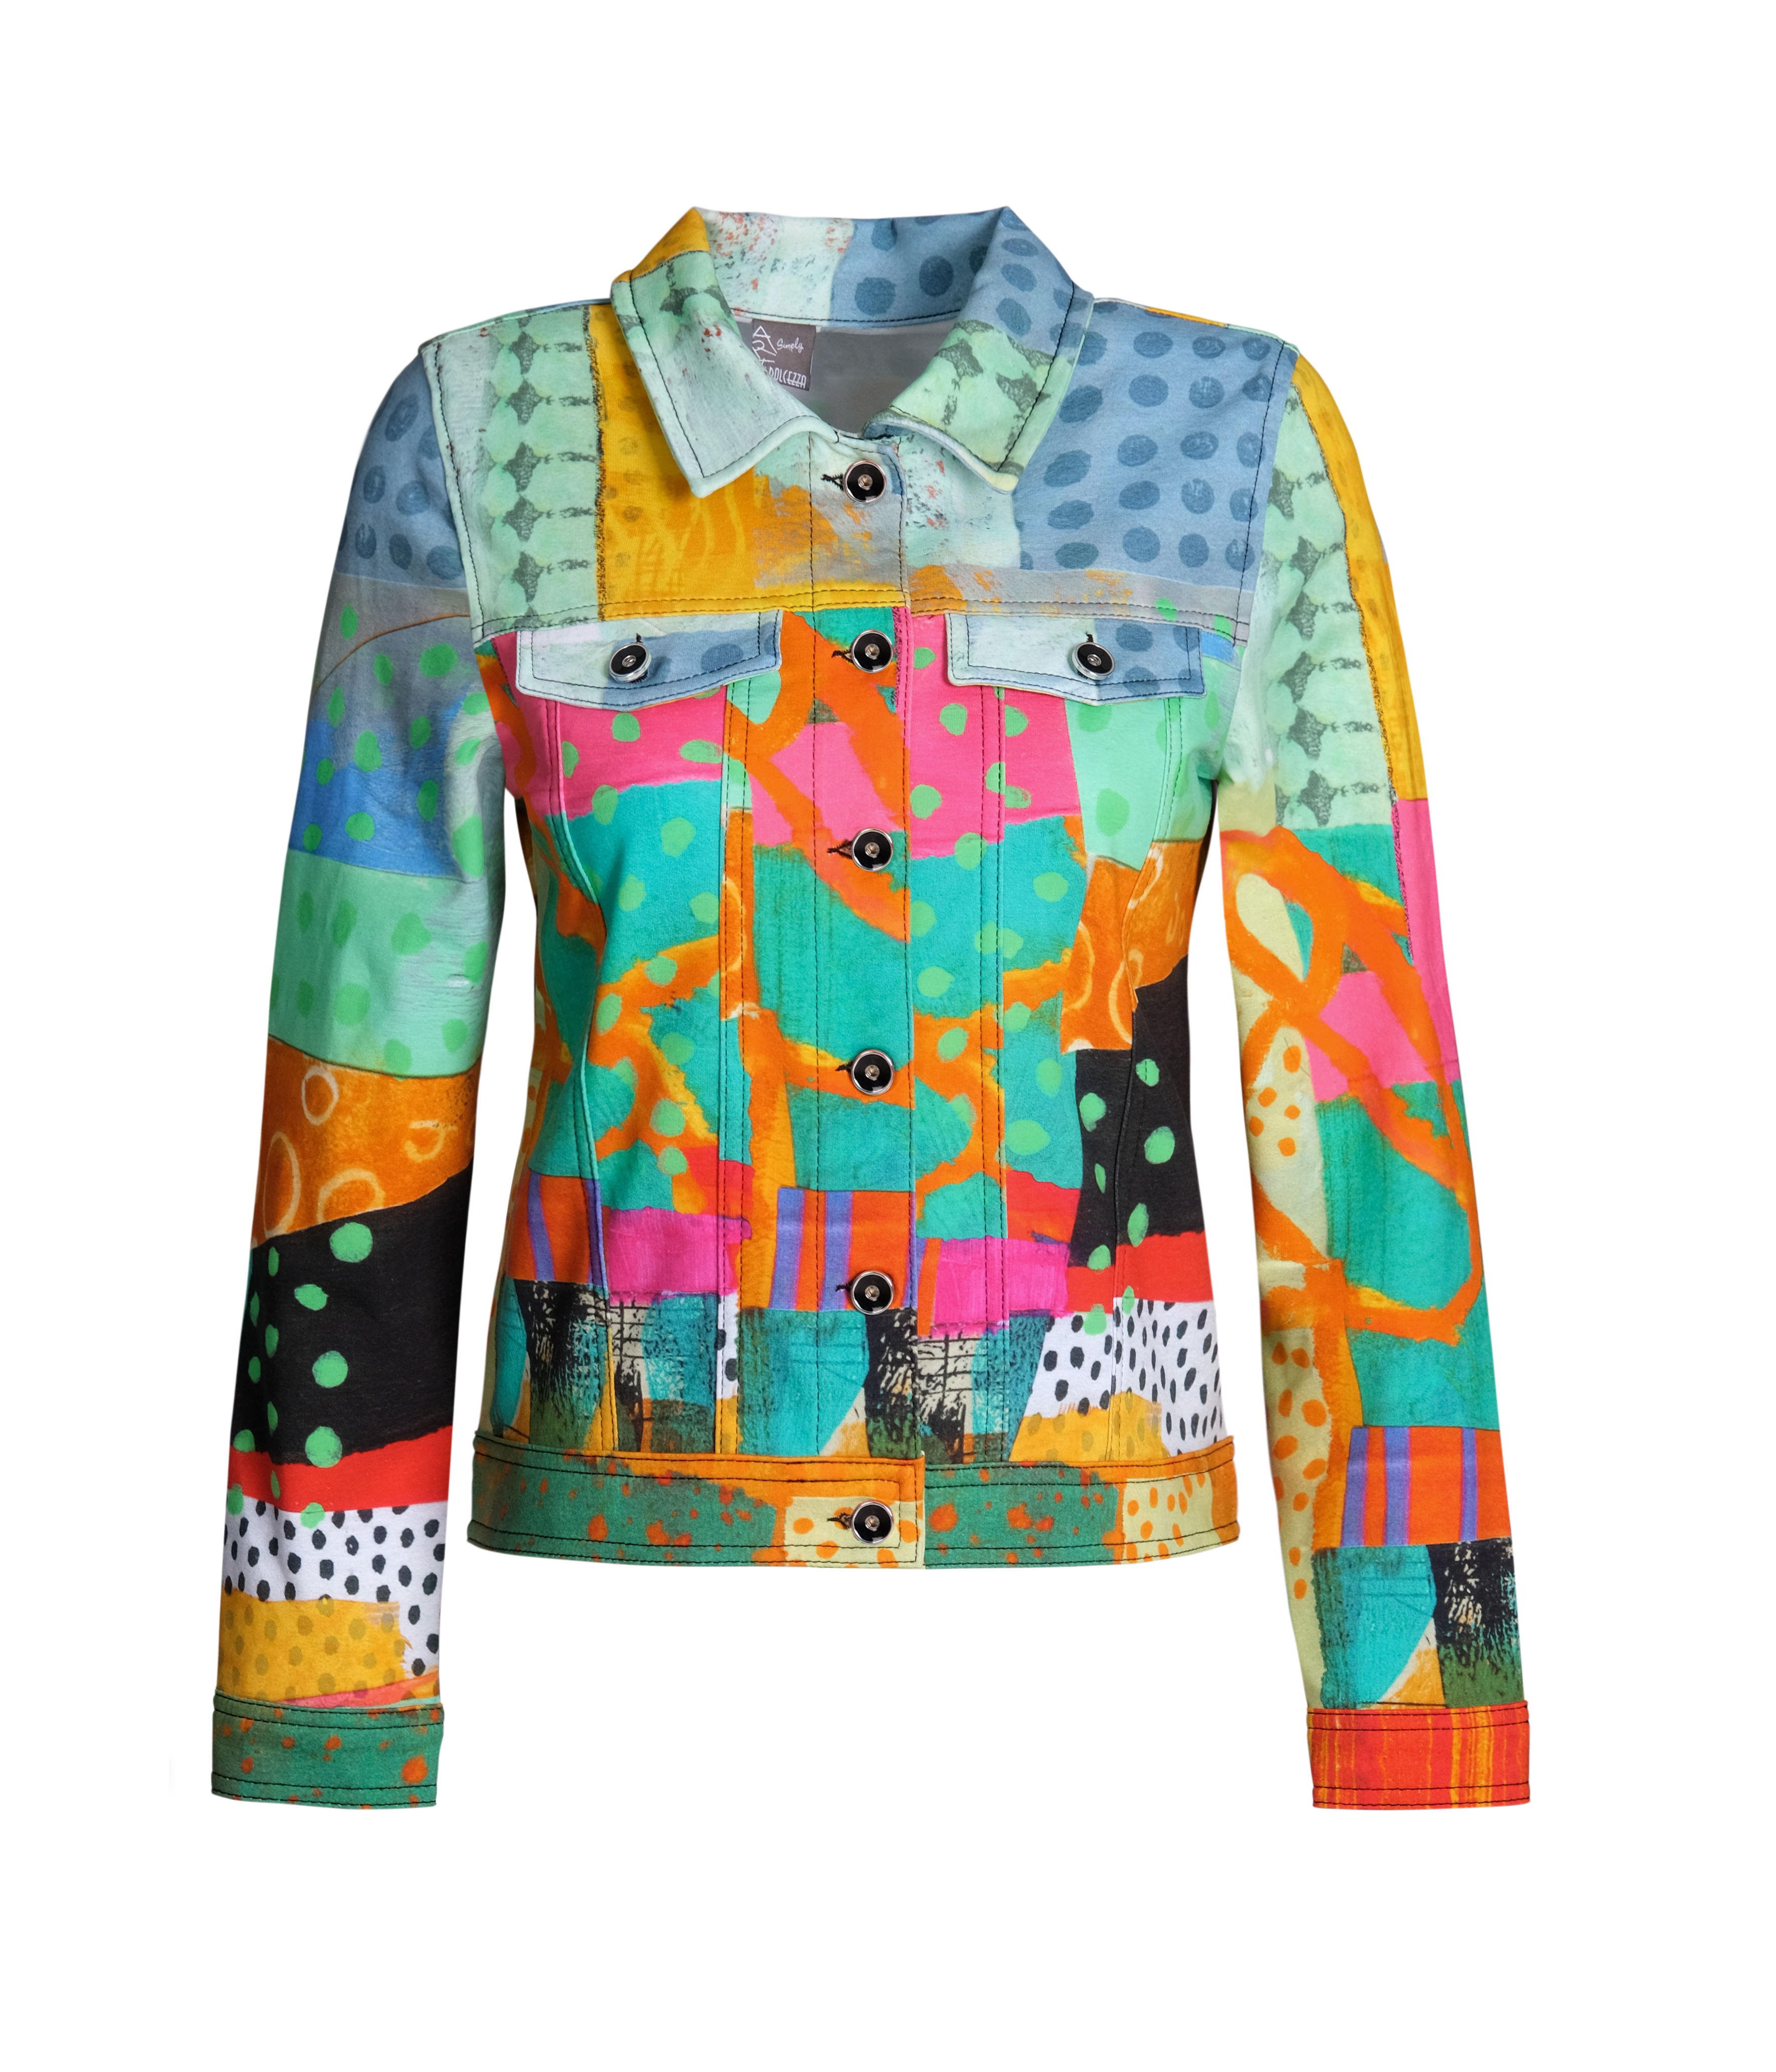 Simply Art Dolcezza: Leisurely Love Stowe In October Abstract Art Soft Denim Jacket DOLCEZZA_SIMPLYART_21659